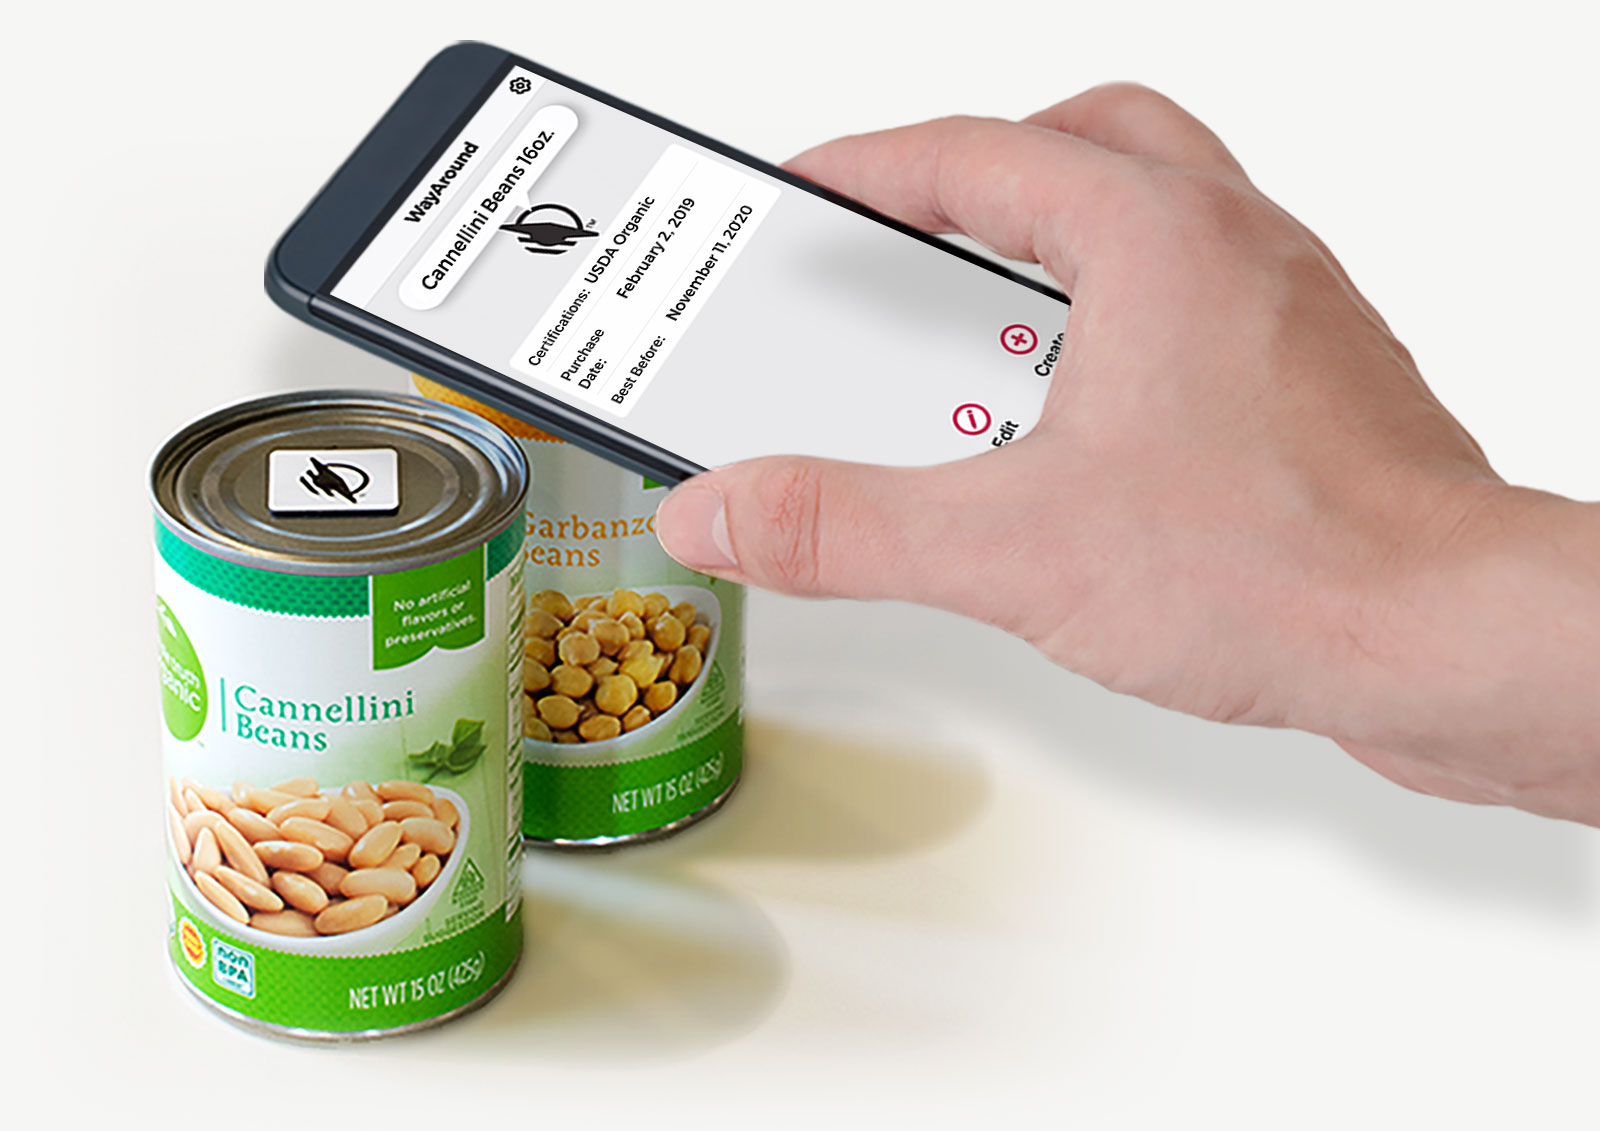 Hand holding a smartphone just over a can of beans with a WayTag magnet visible on top of the can. The phone shows the WayAround app with a description and product information for the cans of beans.